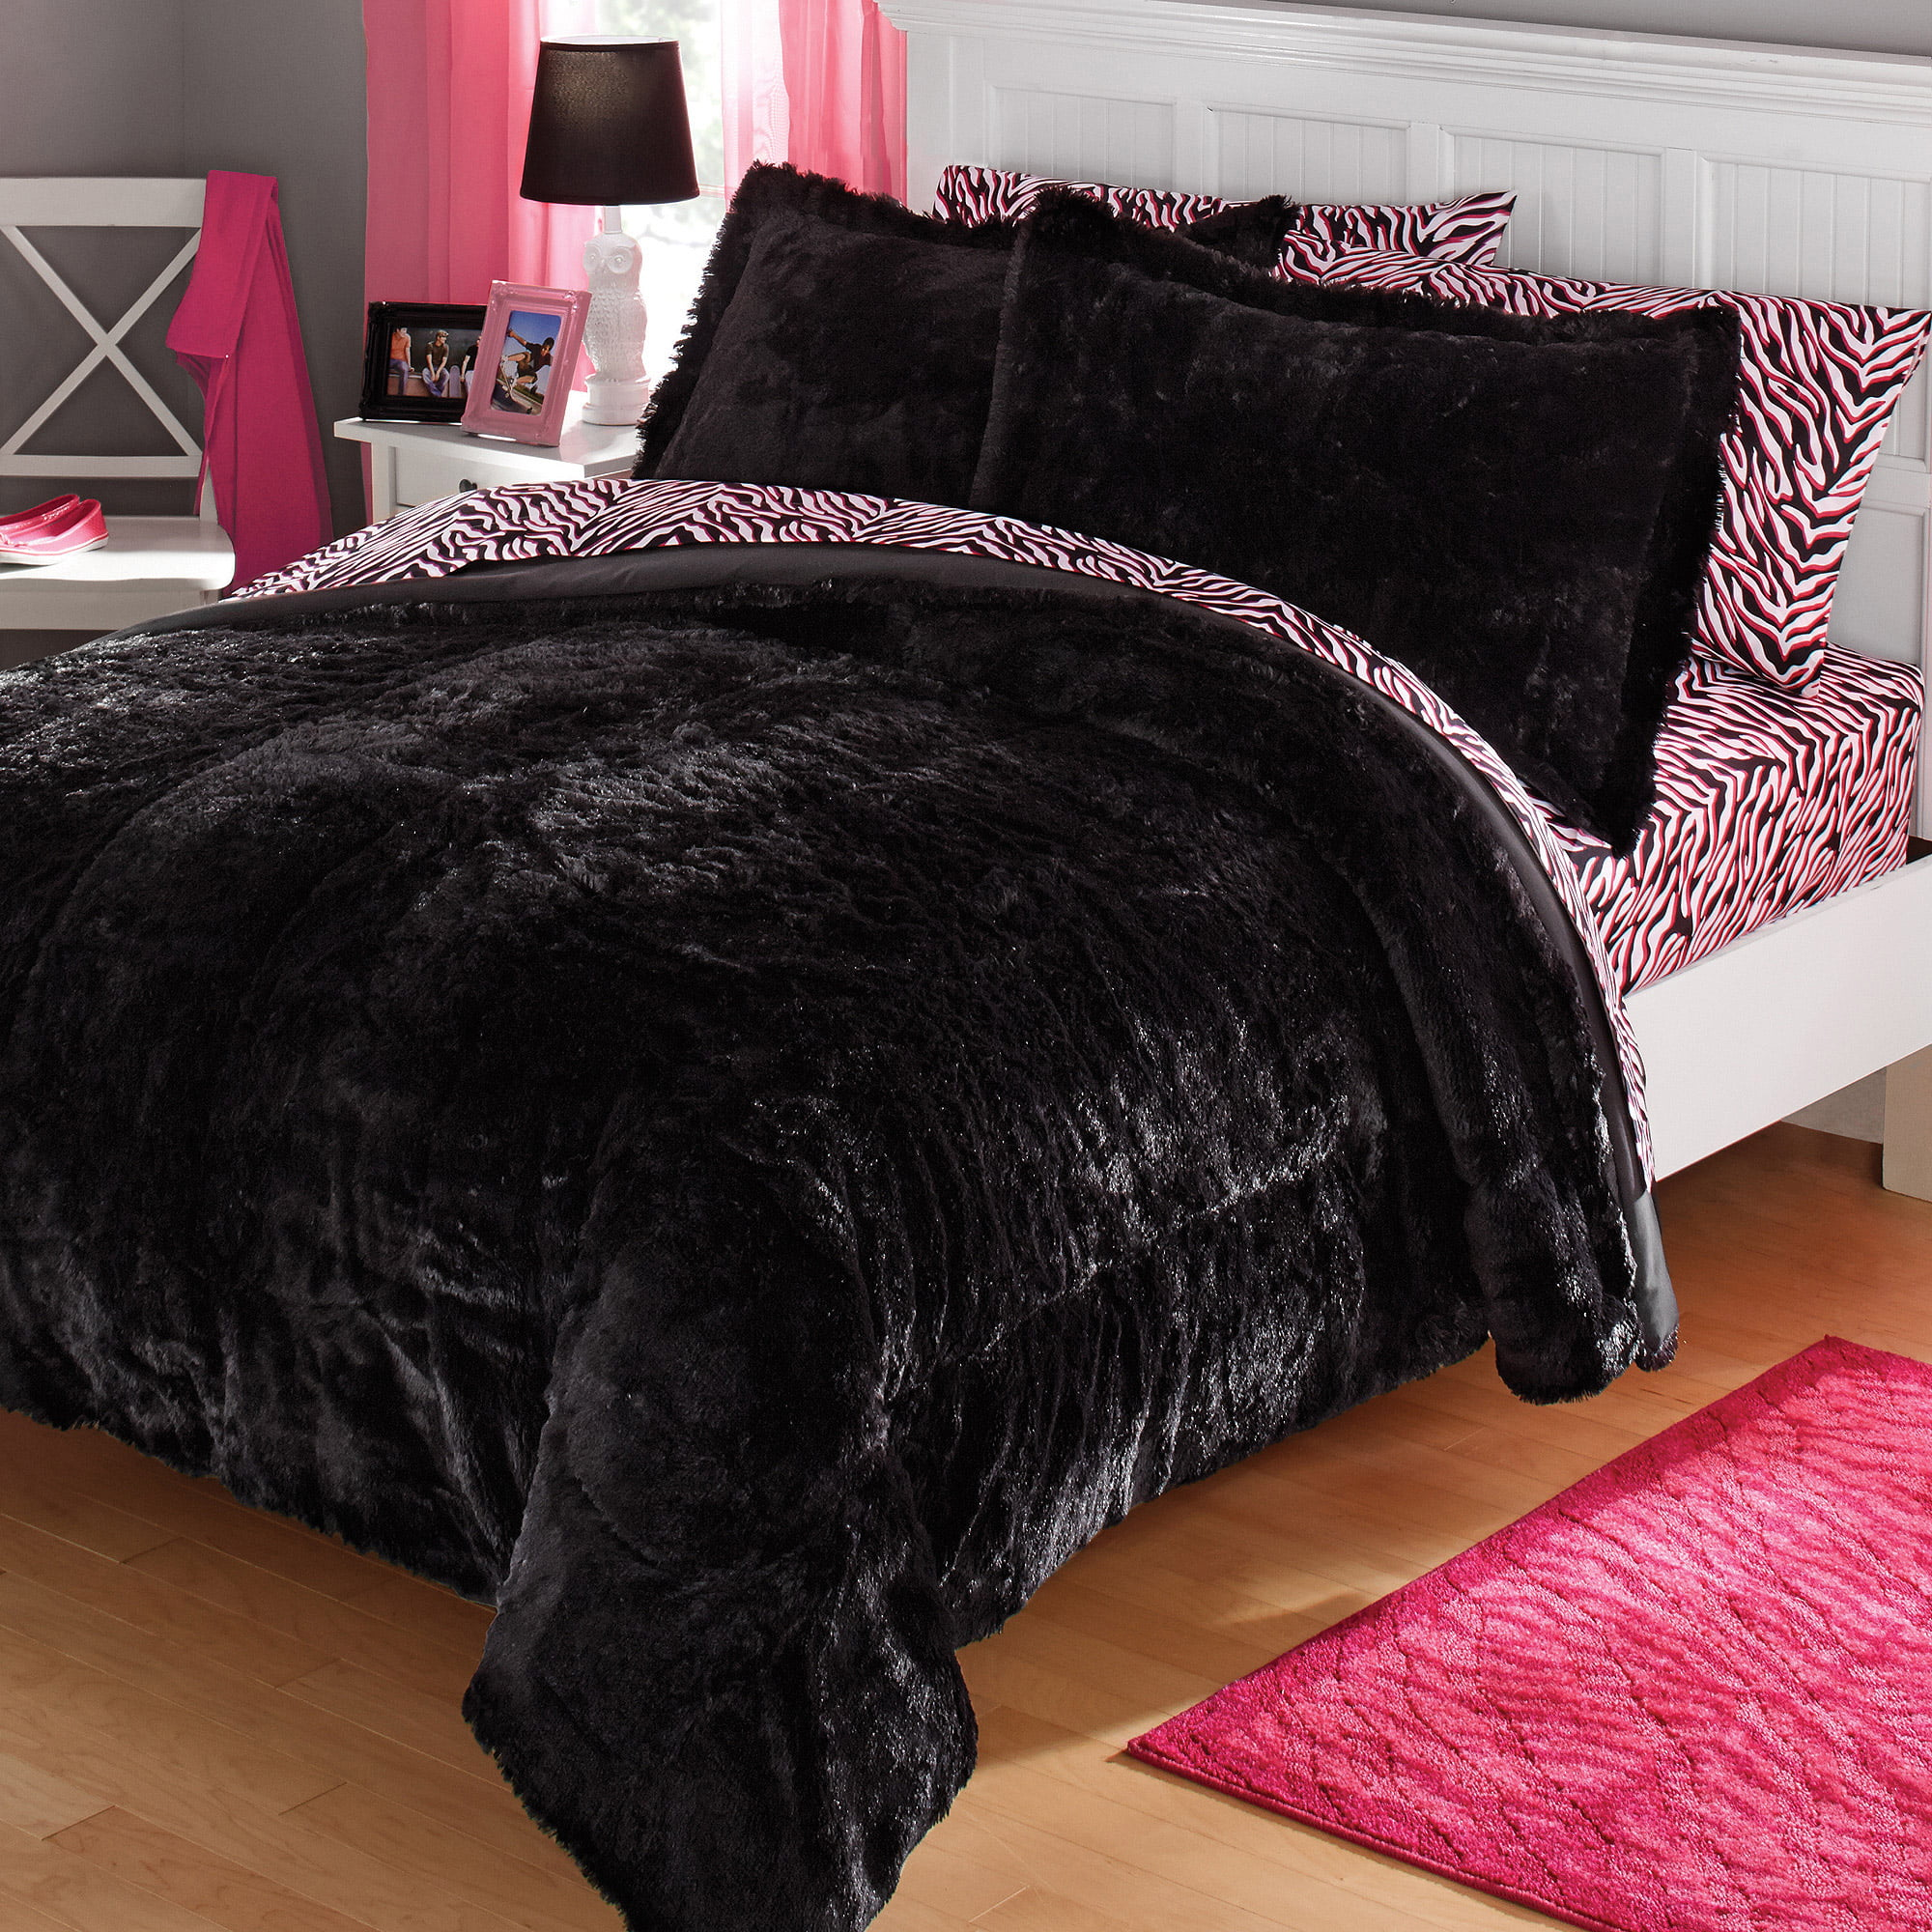 Your Zone Long Fur Bedding Comforter Set 1 Each